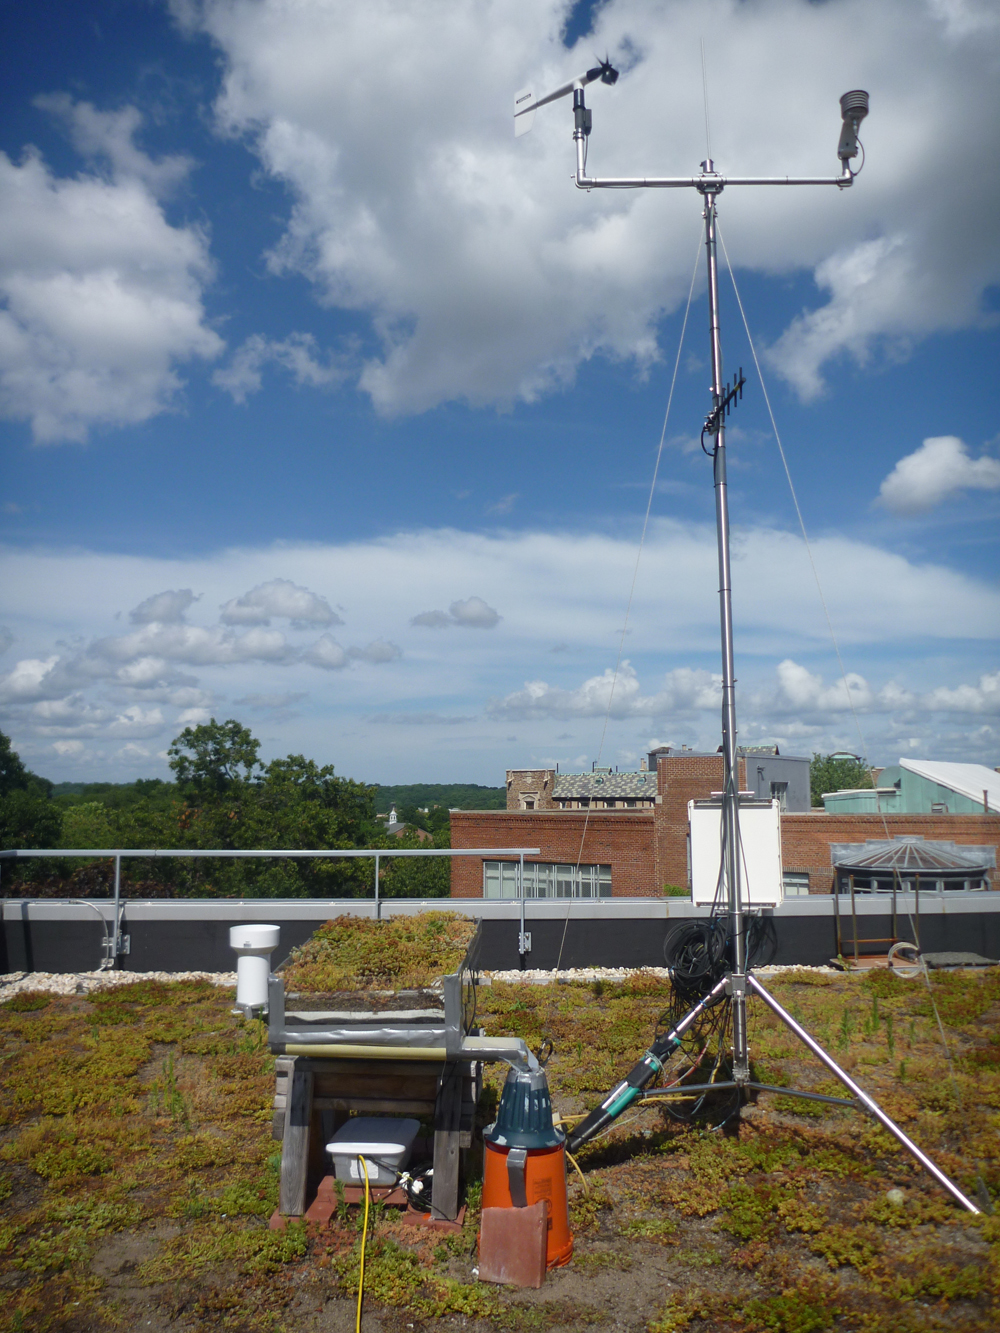 Wind and rain gauges provide climatic data, which is plugged into equations for calculating evapotranspiration. (Credit: Franco Mantalto)